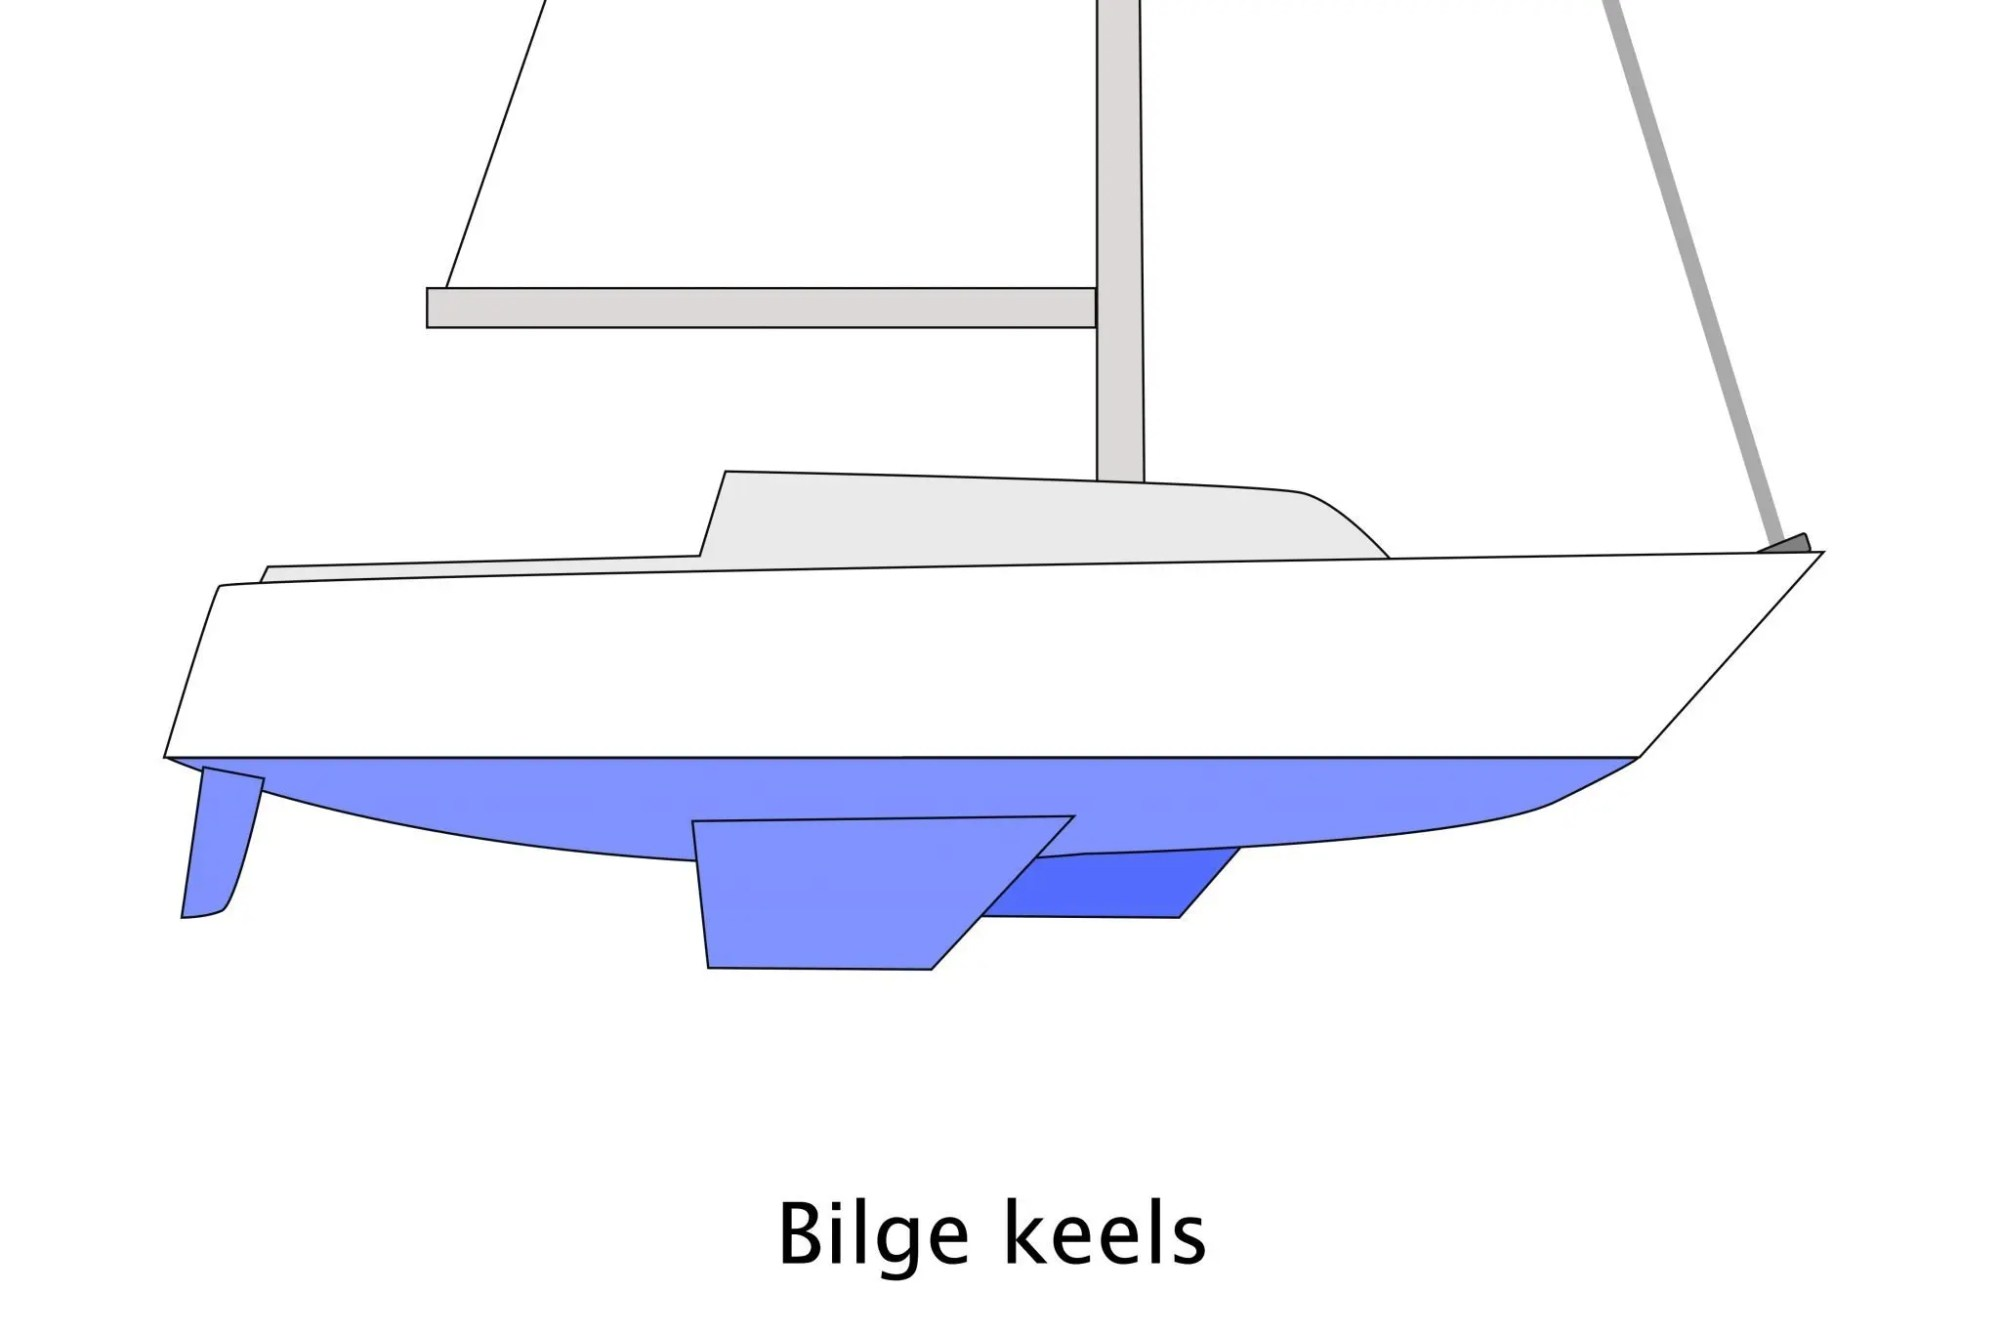 hight resolution of  making them suited to cruising in shallow coastal waters they do not perform to windward as well as a fin keel and are used for cruising as opposed to